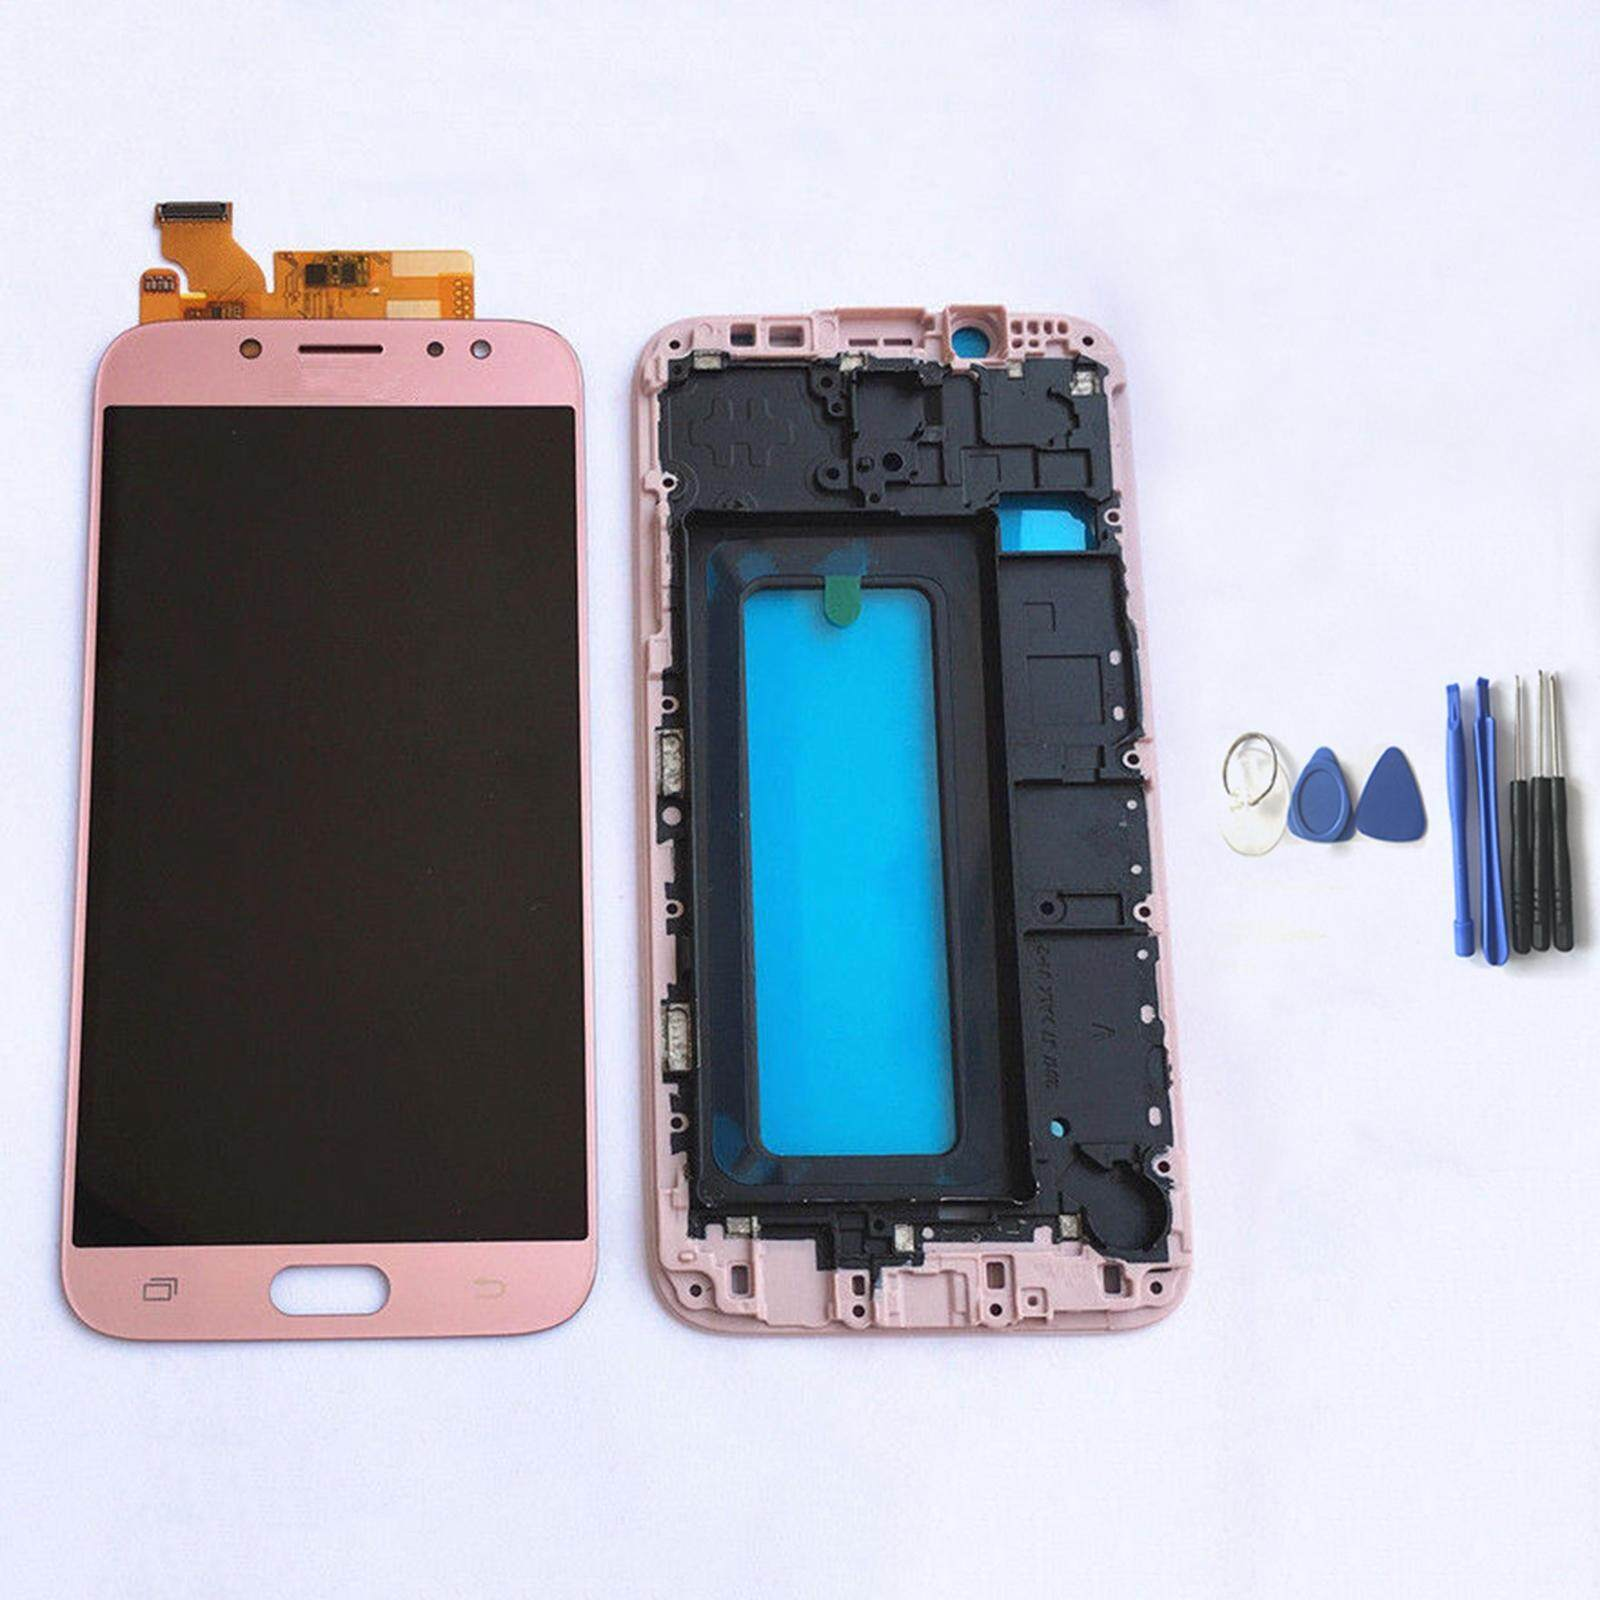 LCD Display Touch Screen Digitizer Assembly with frame for Samsung Galaxy J7 PRO 2017 J730 J730F J730M J730H